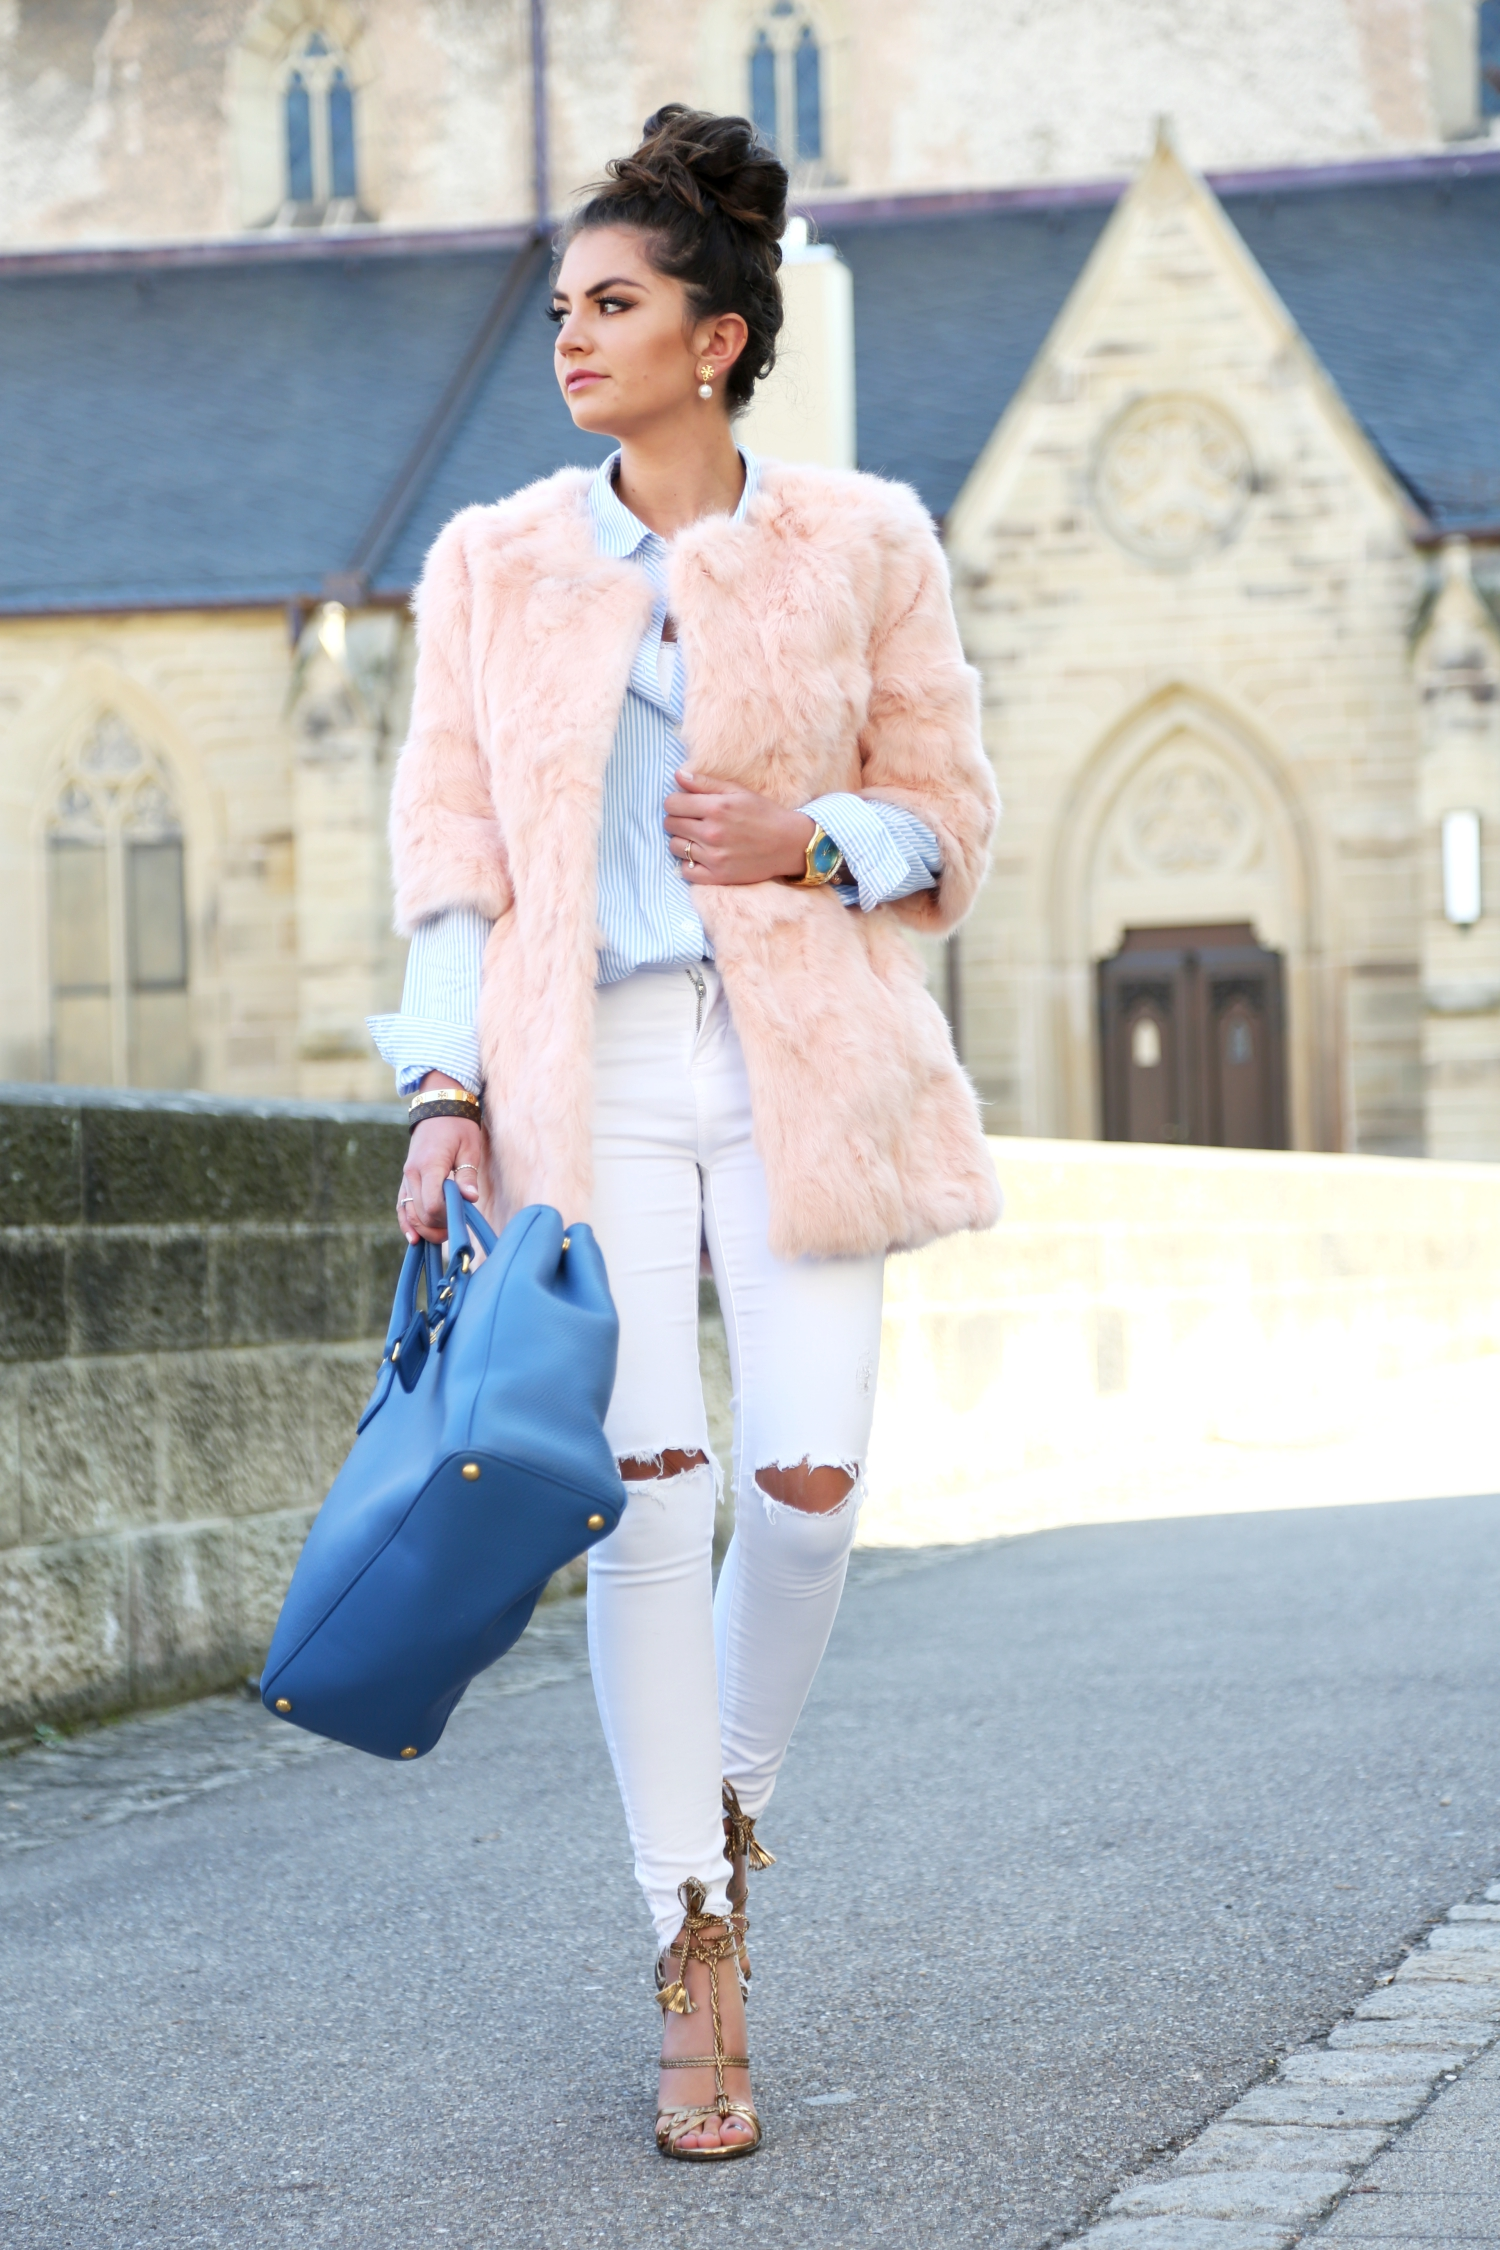 outfit-fashionhippieloves-spring-pastel-colors-white-ripped-jeans-faux-fur-coat-pink